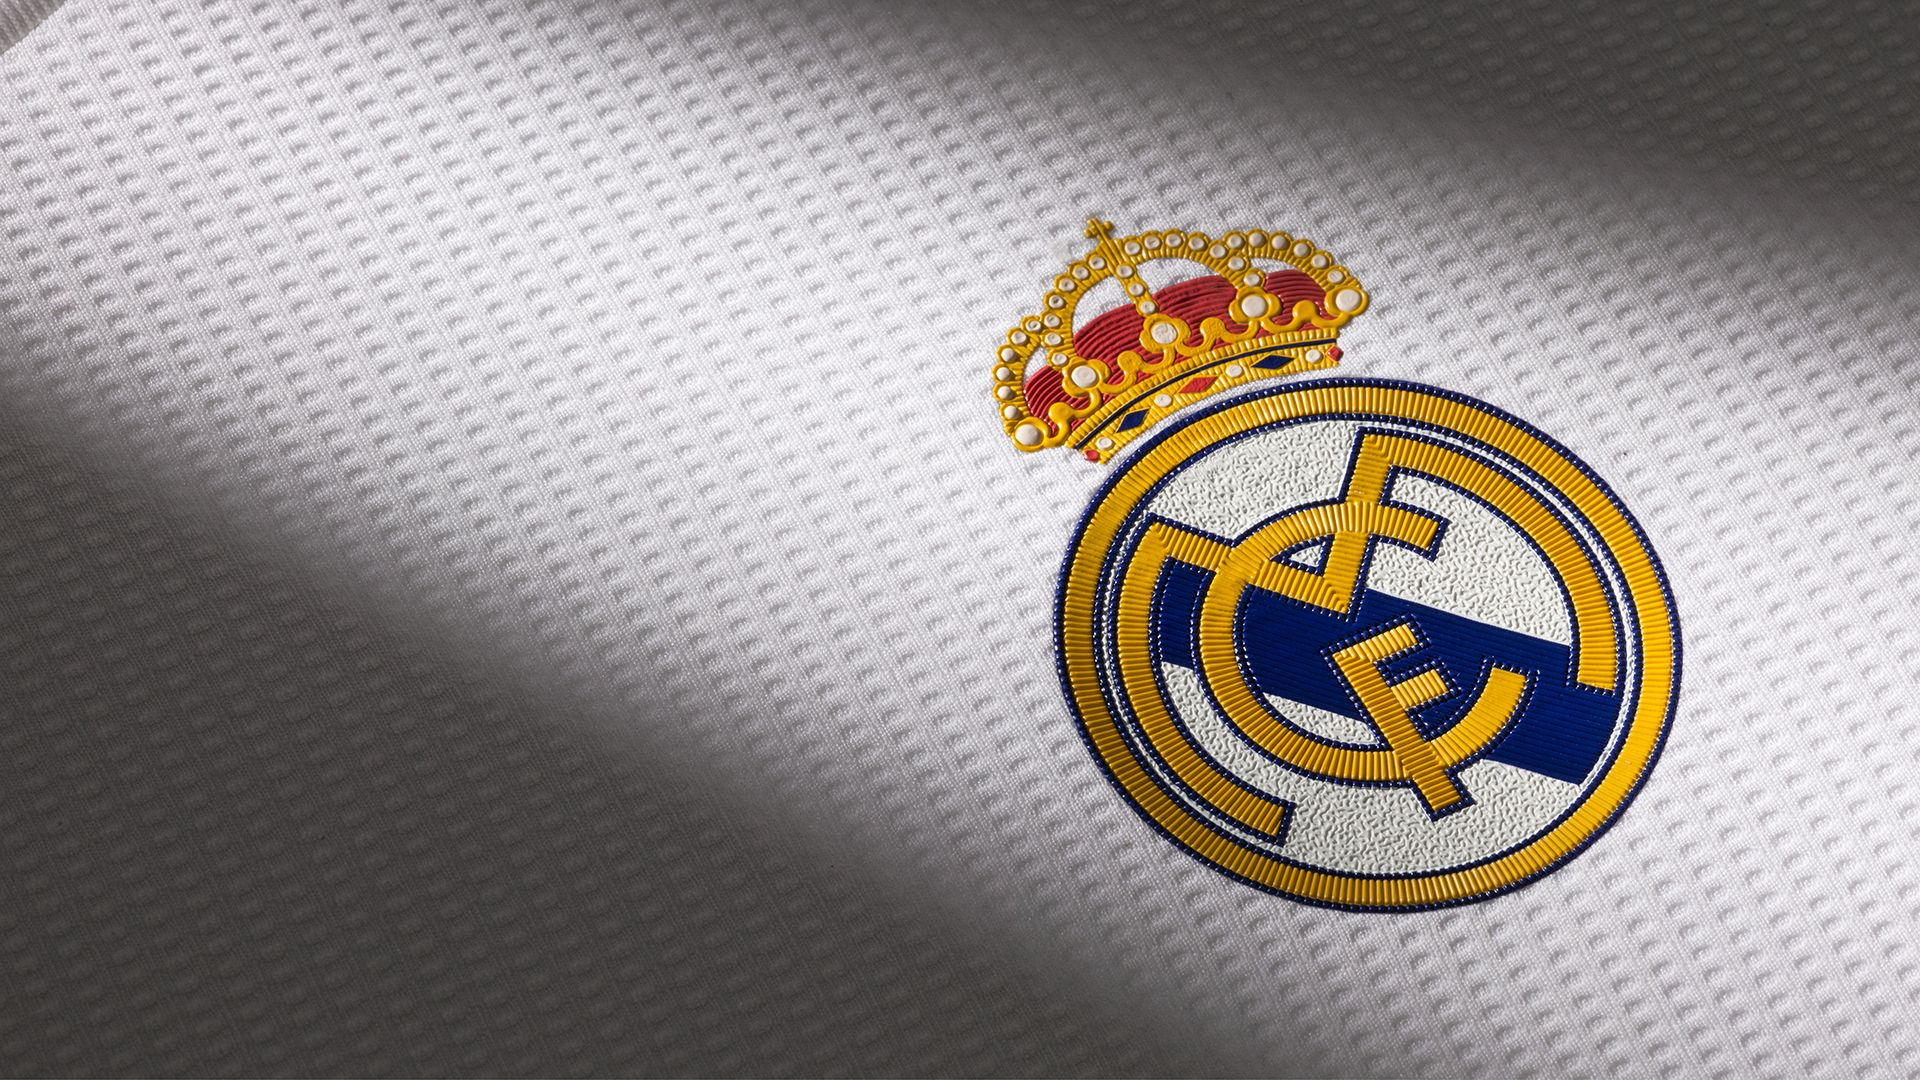 Real Madrid Poster Real madrid logo wallpapers, Real